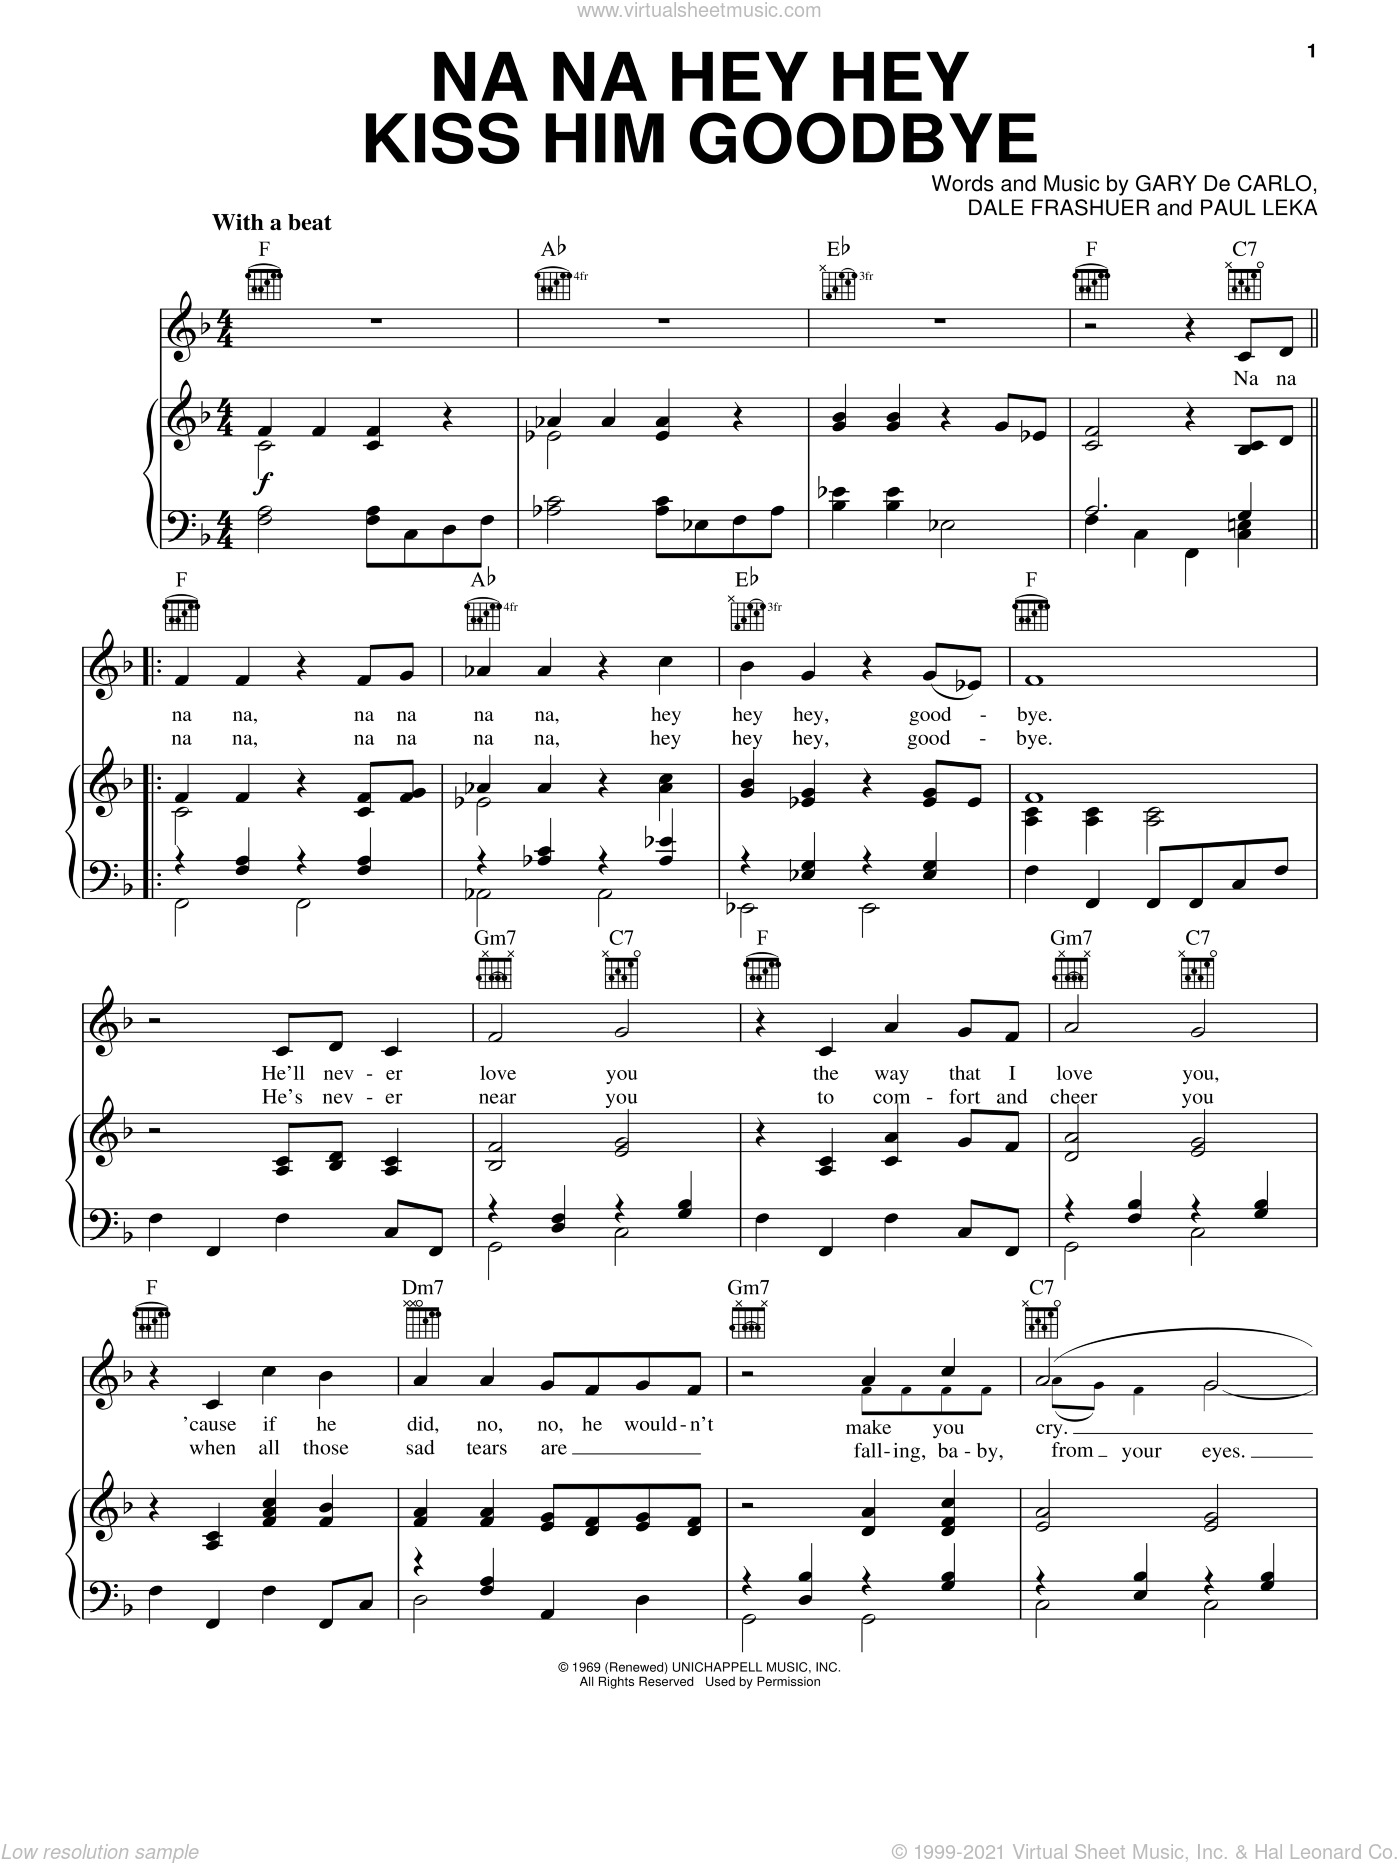 Na Na Hey Hey Kiss Him Goodbye sheet music for voice, piano or guitar by Paul Leka